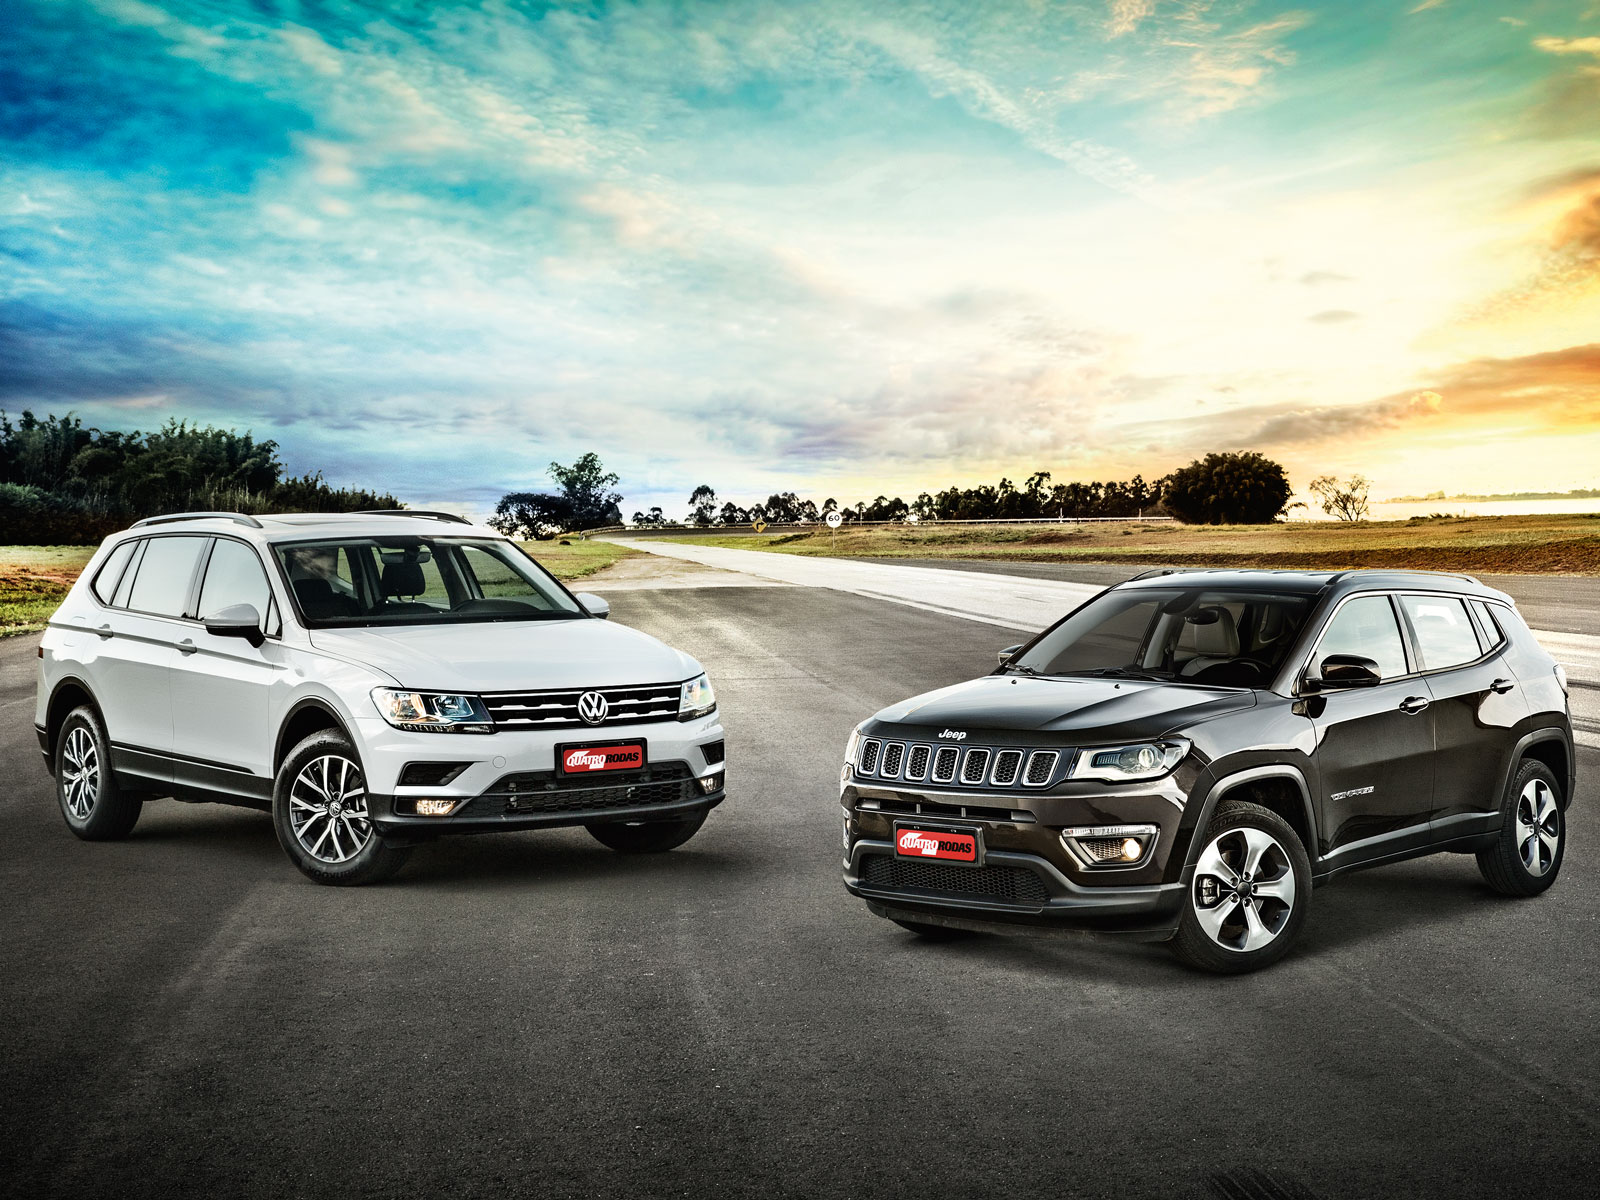 Jeep Compass x VW Tiguan